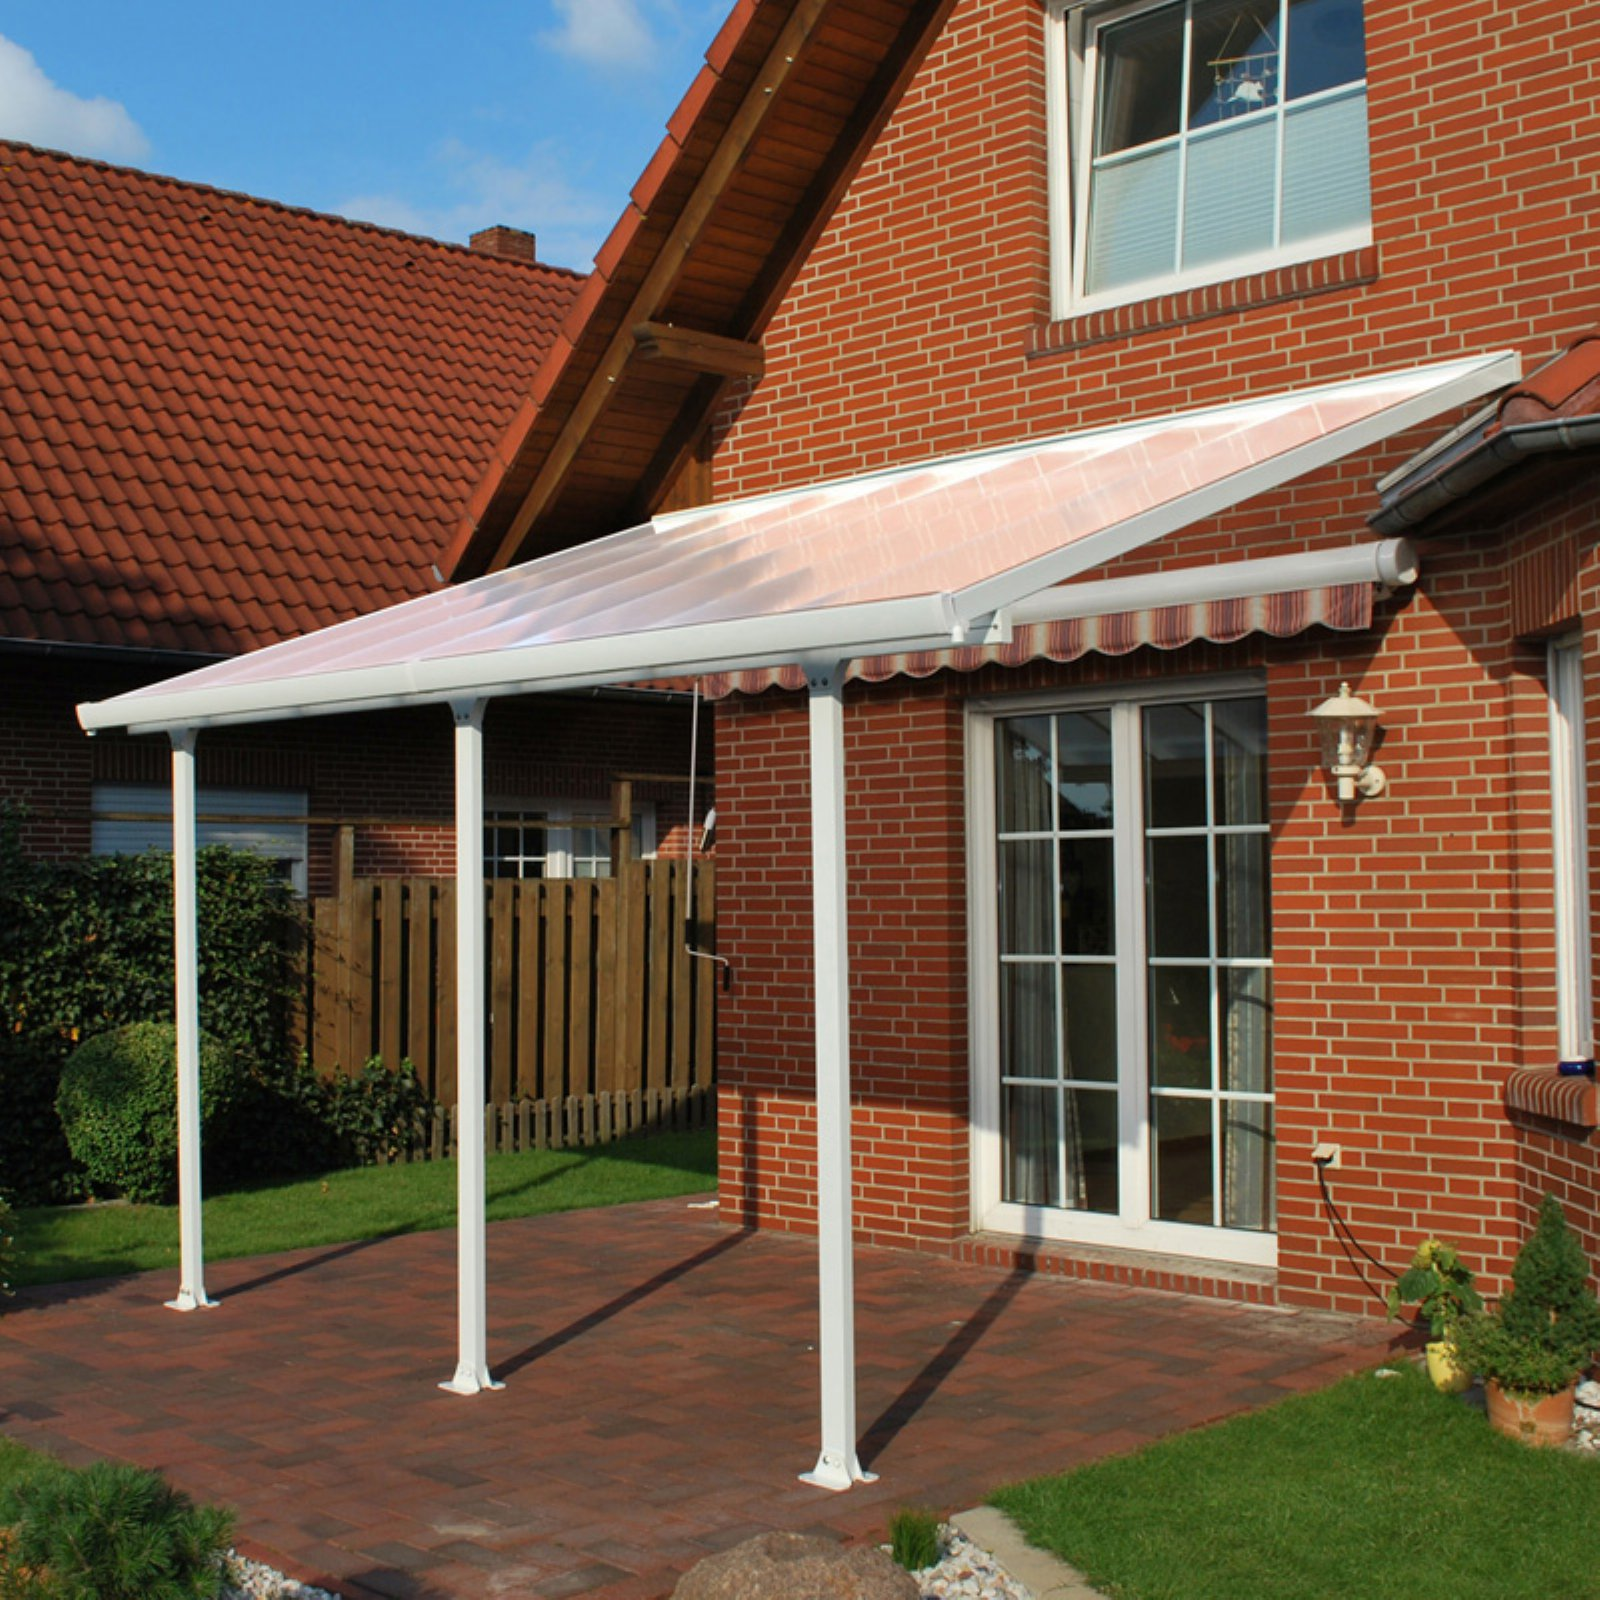 Palram Feria Patio Cover, 10'D, White